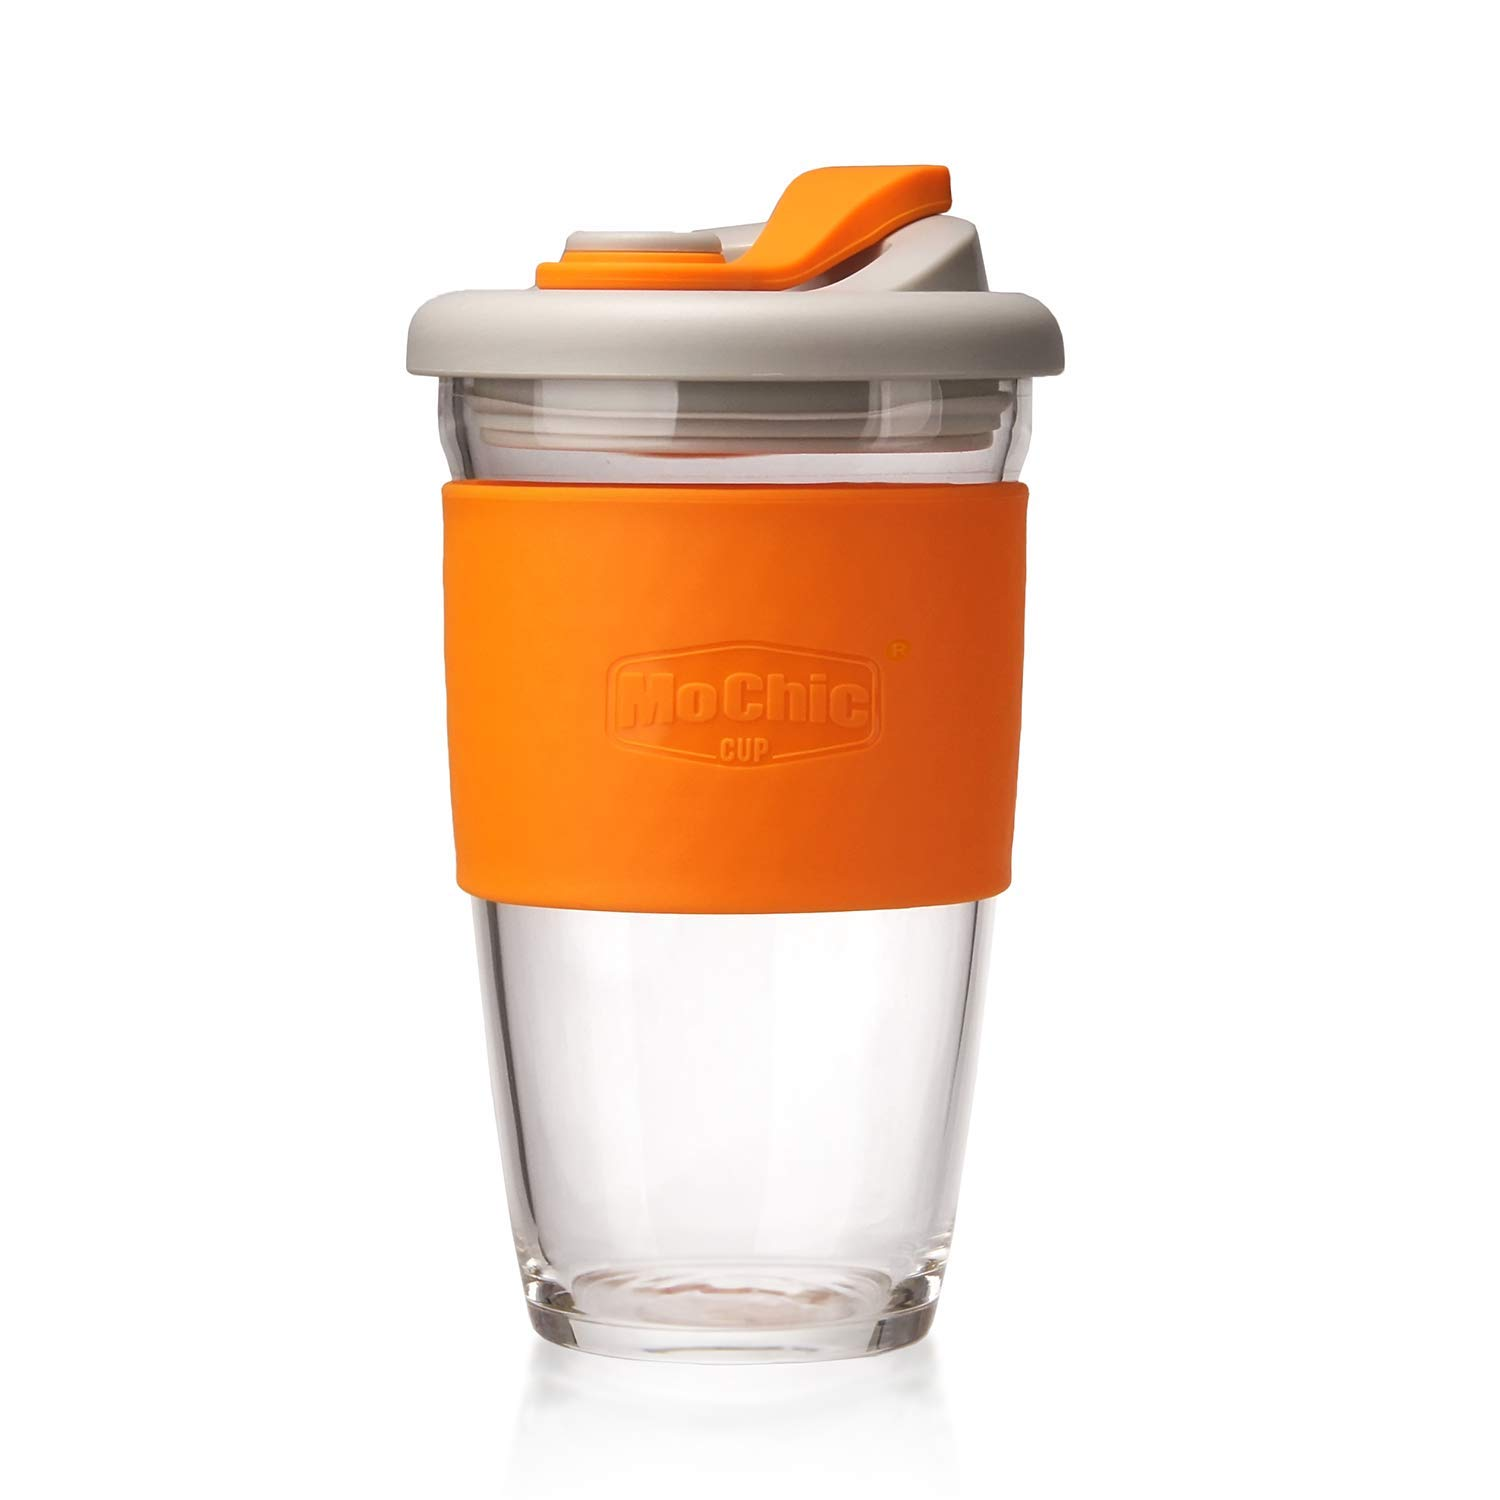 MOCHIC CUP Reusable Glass Coffee Travel Mug with Lid and Non-slip Sleeve Dishwasher and Microwave Safe Cup Portable Durable Drinking Tumbler Eco-Friendly BPA-Free (Orange, 16 OZ)